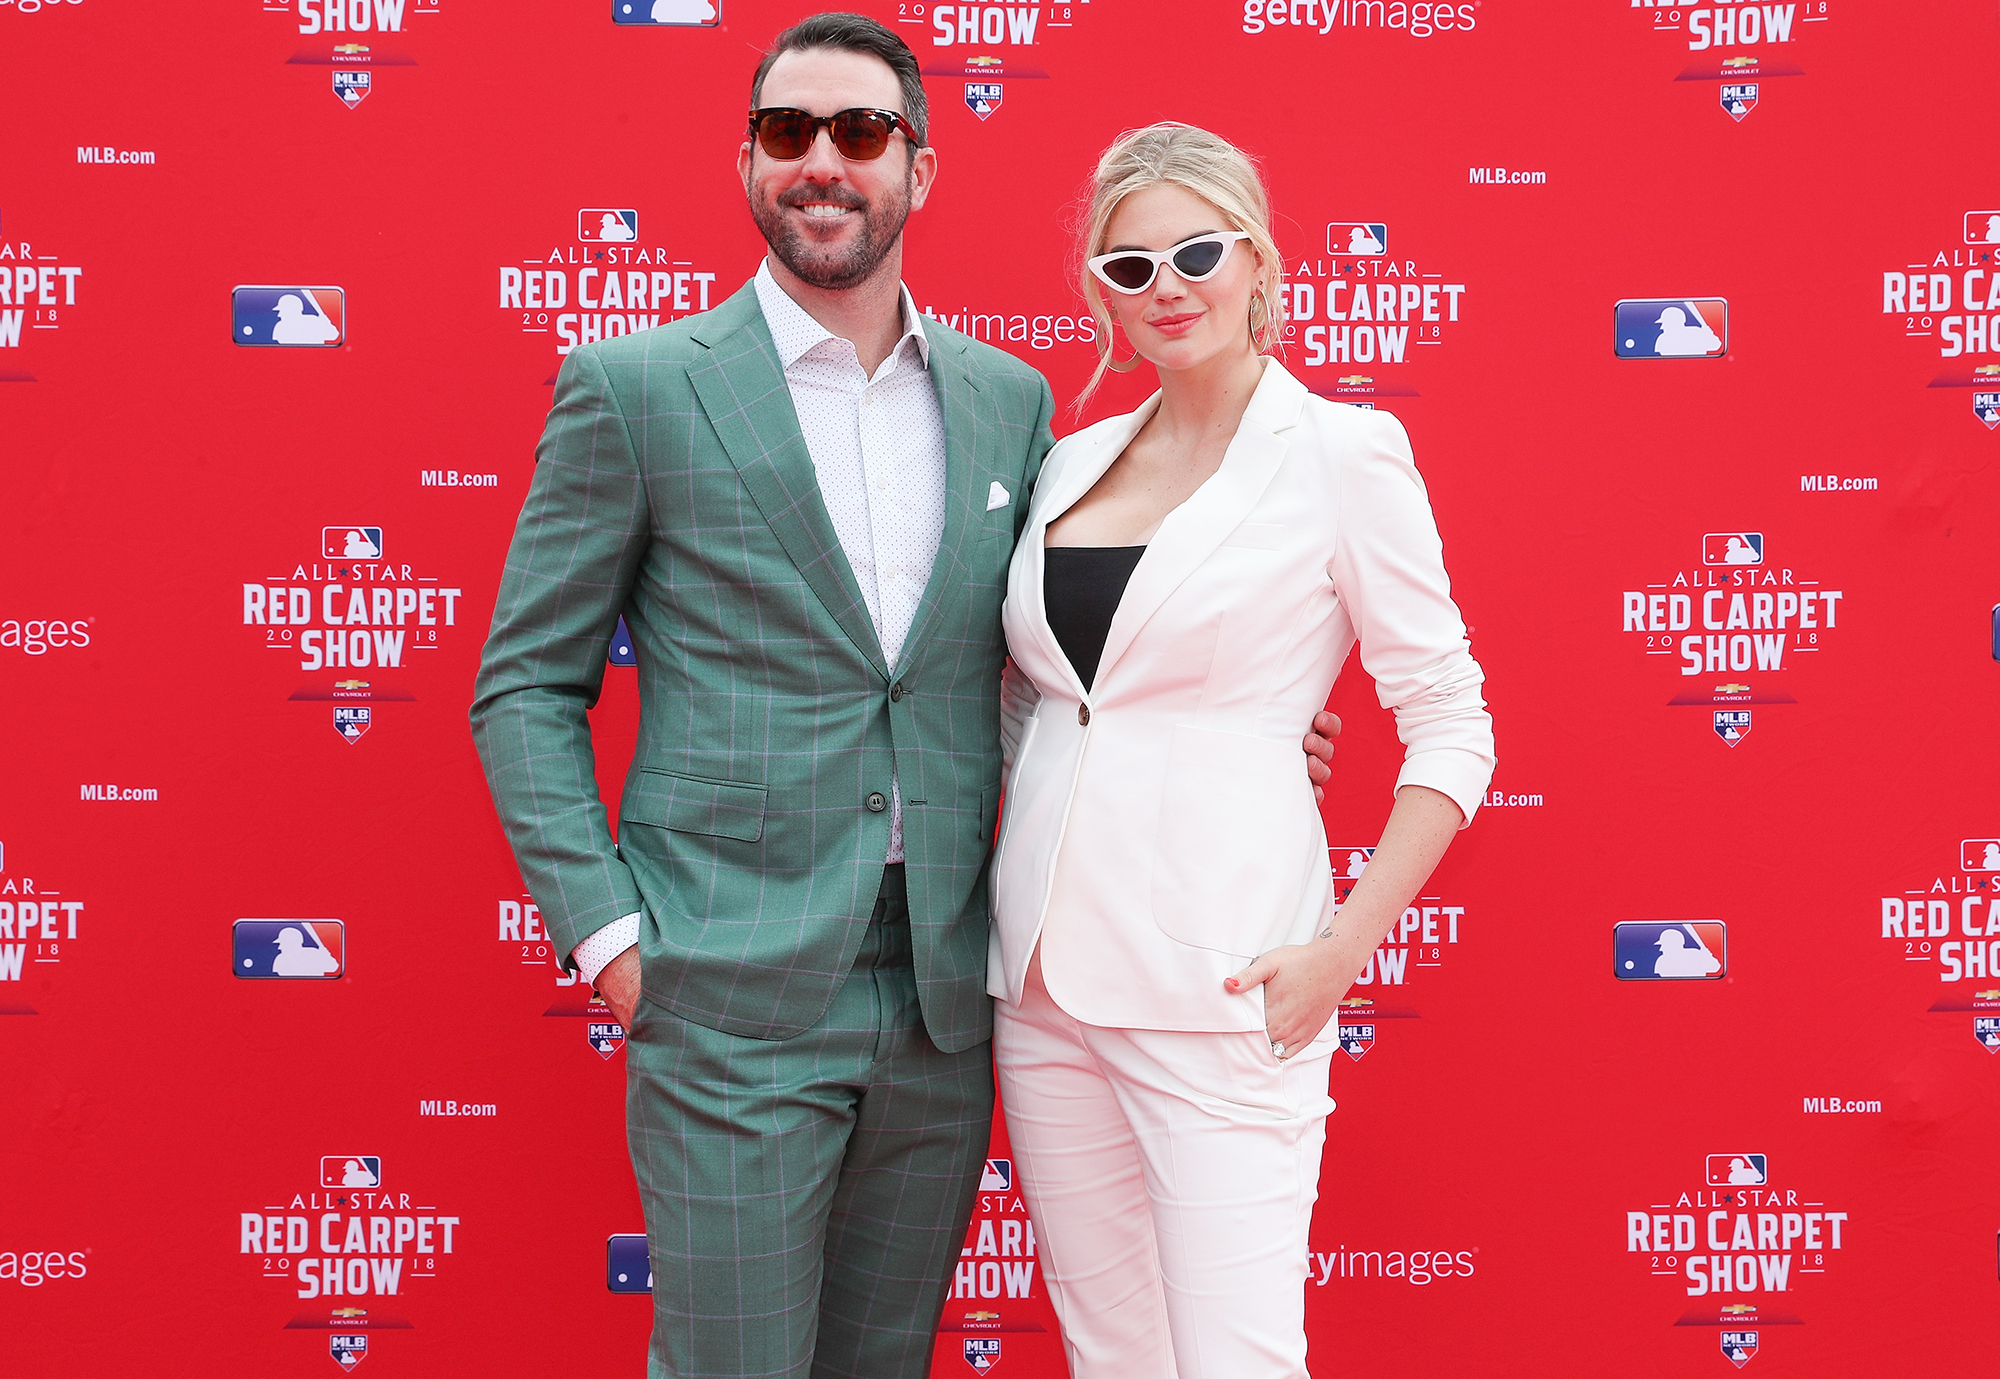 89th MLB All-Star Game, presented by MasterCard - Red Carpet